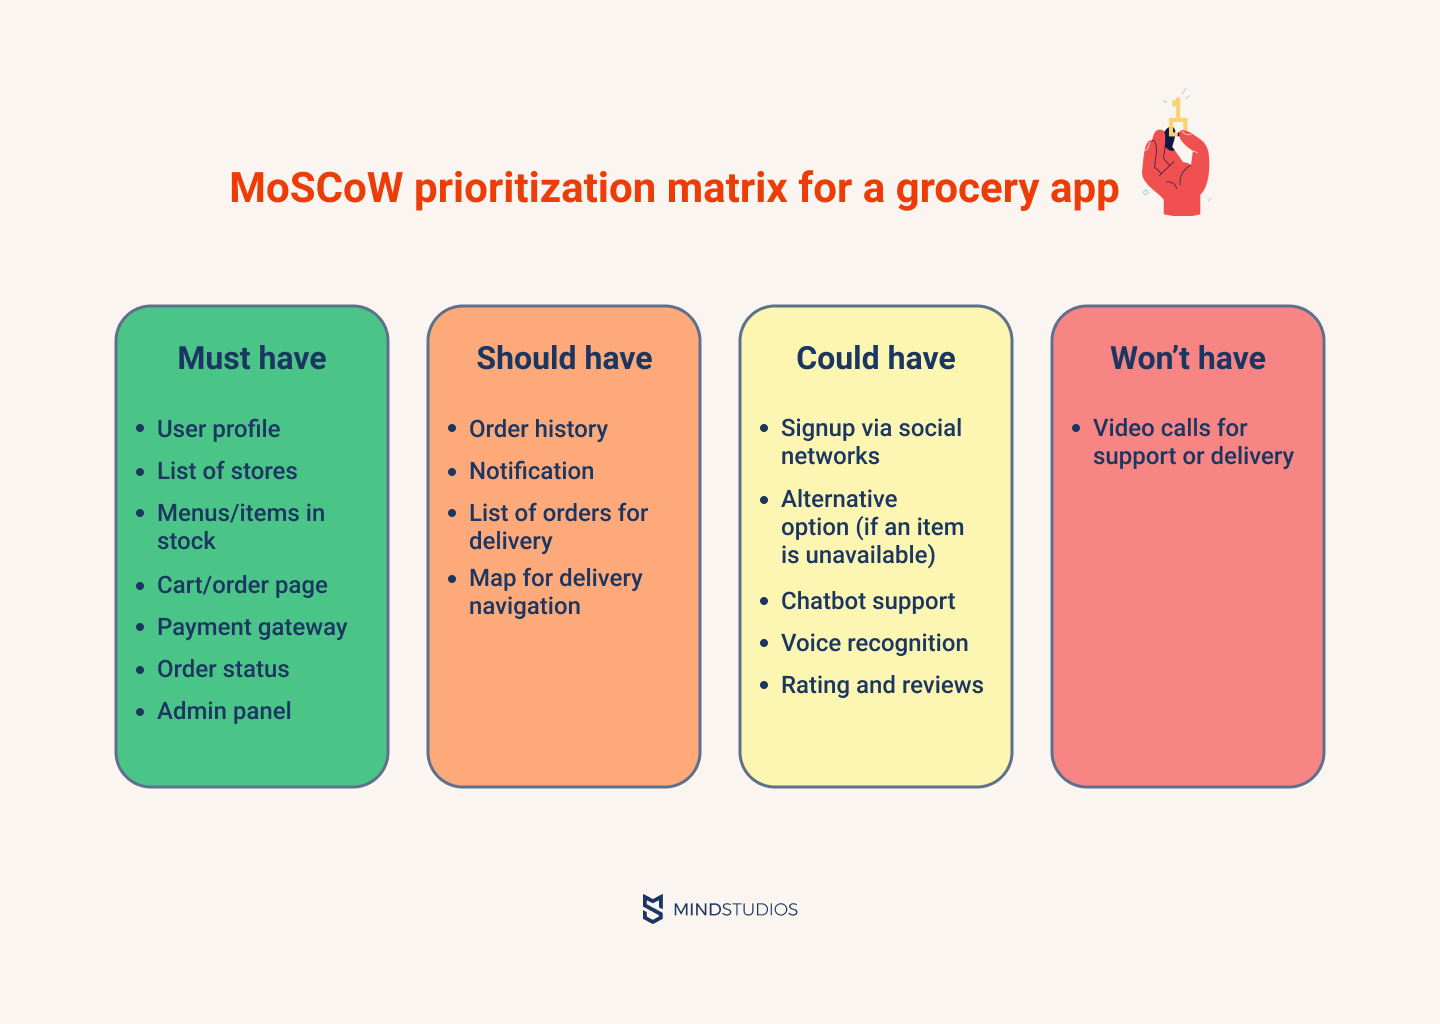 MoSCoW prioritization matrix for a grocery app